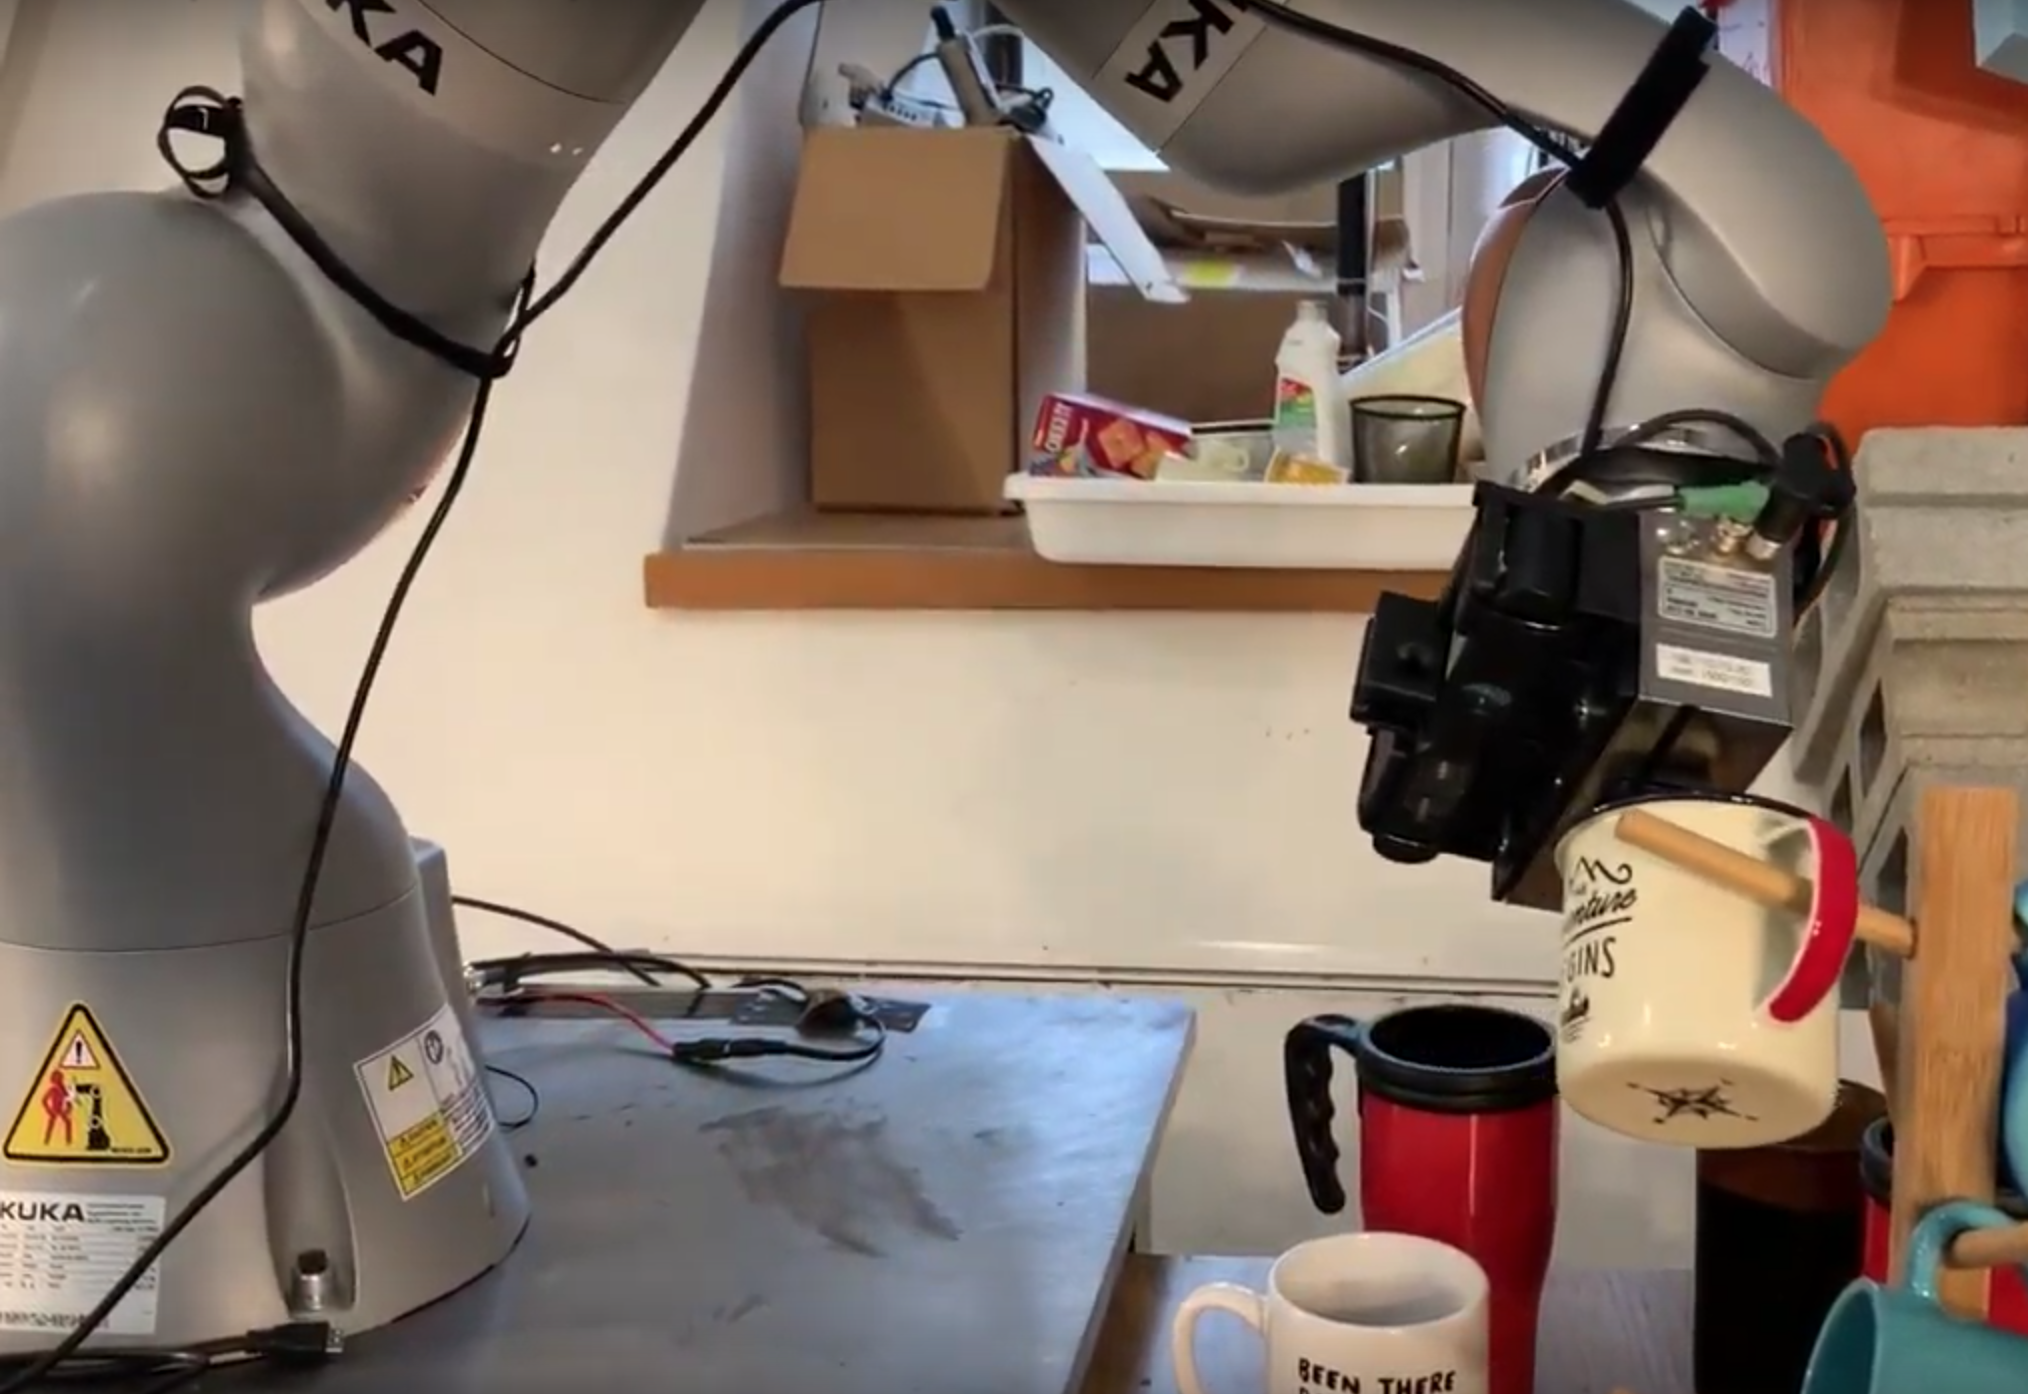 With training, the robot arm and sensors can recognize and orient any mug by identifying three key points on the mug. This kind of learning and rapid adaptation could have military applications down the road. (Image courtesy MIT CSAIL)